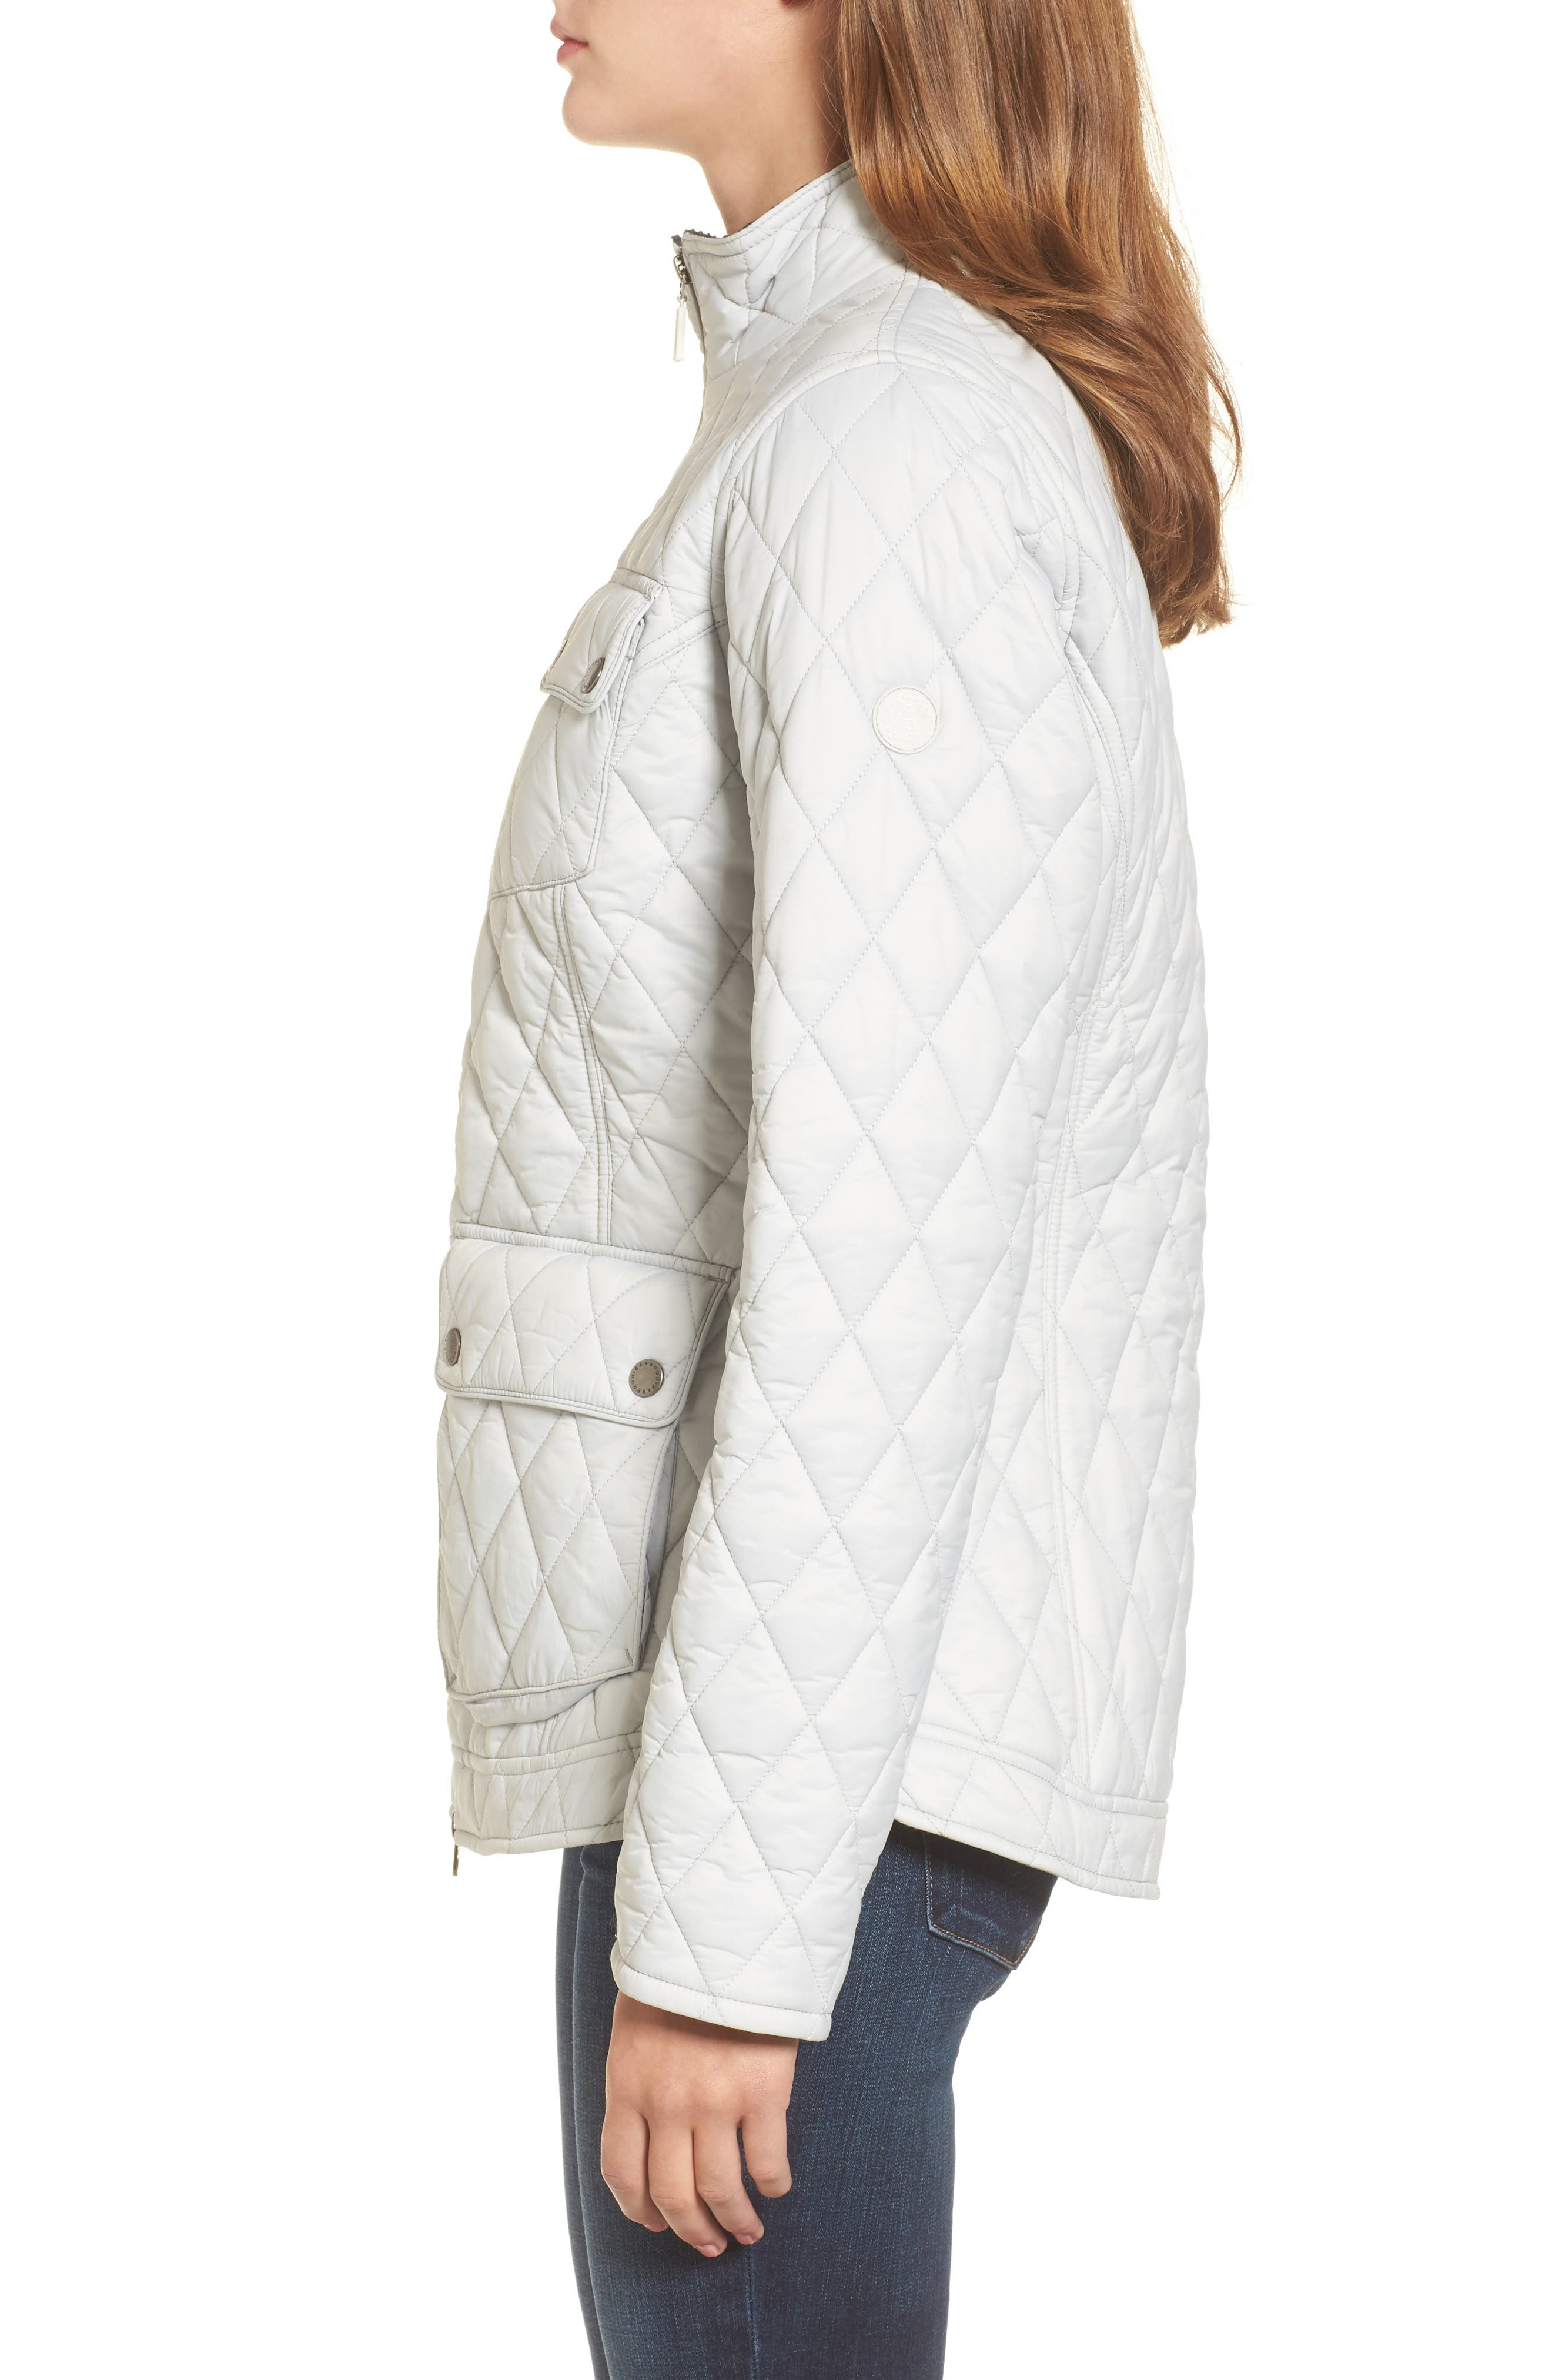 Dolostone Quilted Jacket,                             Alternate thumbnail 3, color,                             Ice White